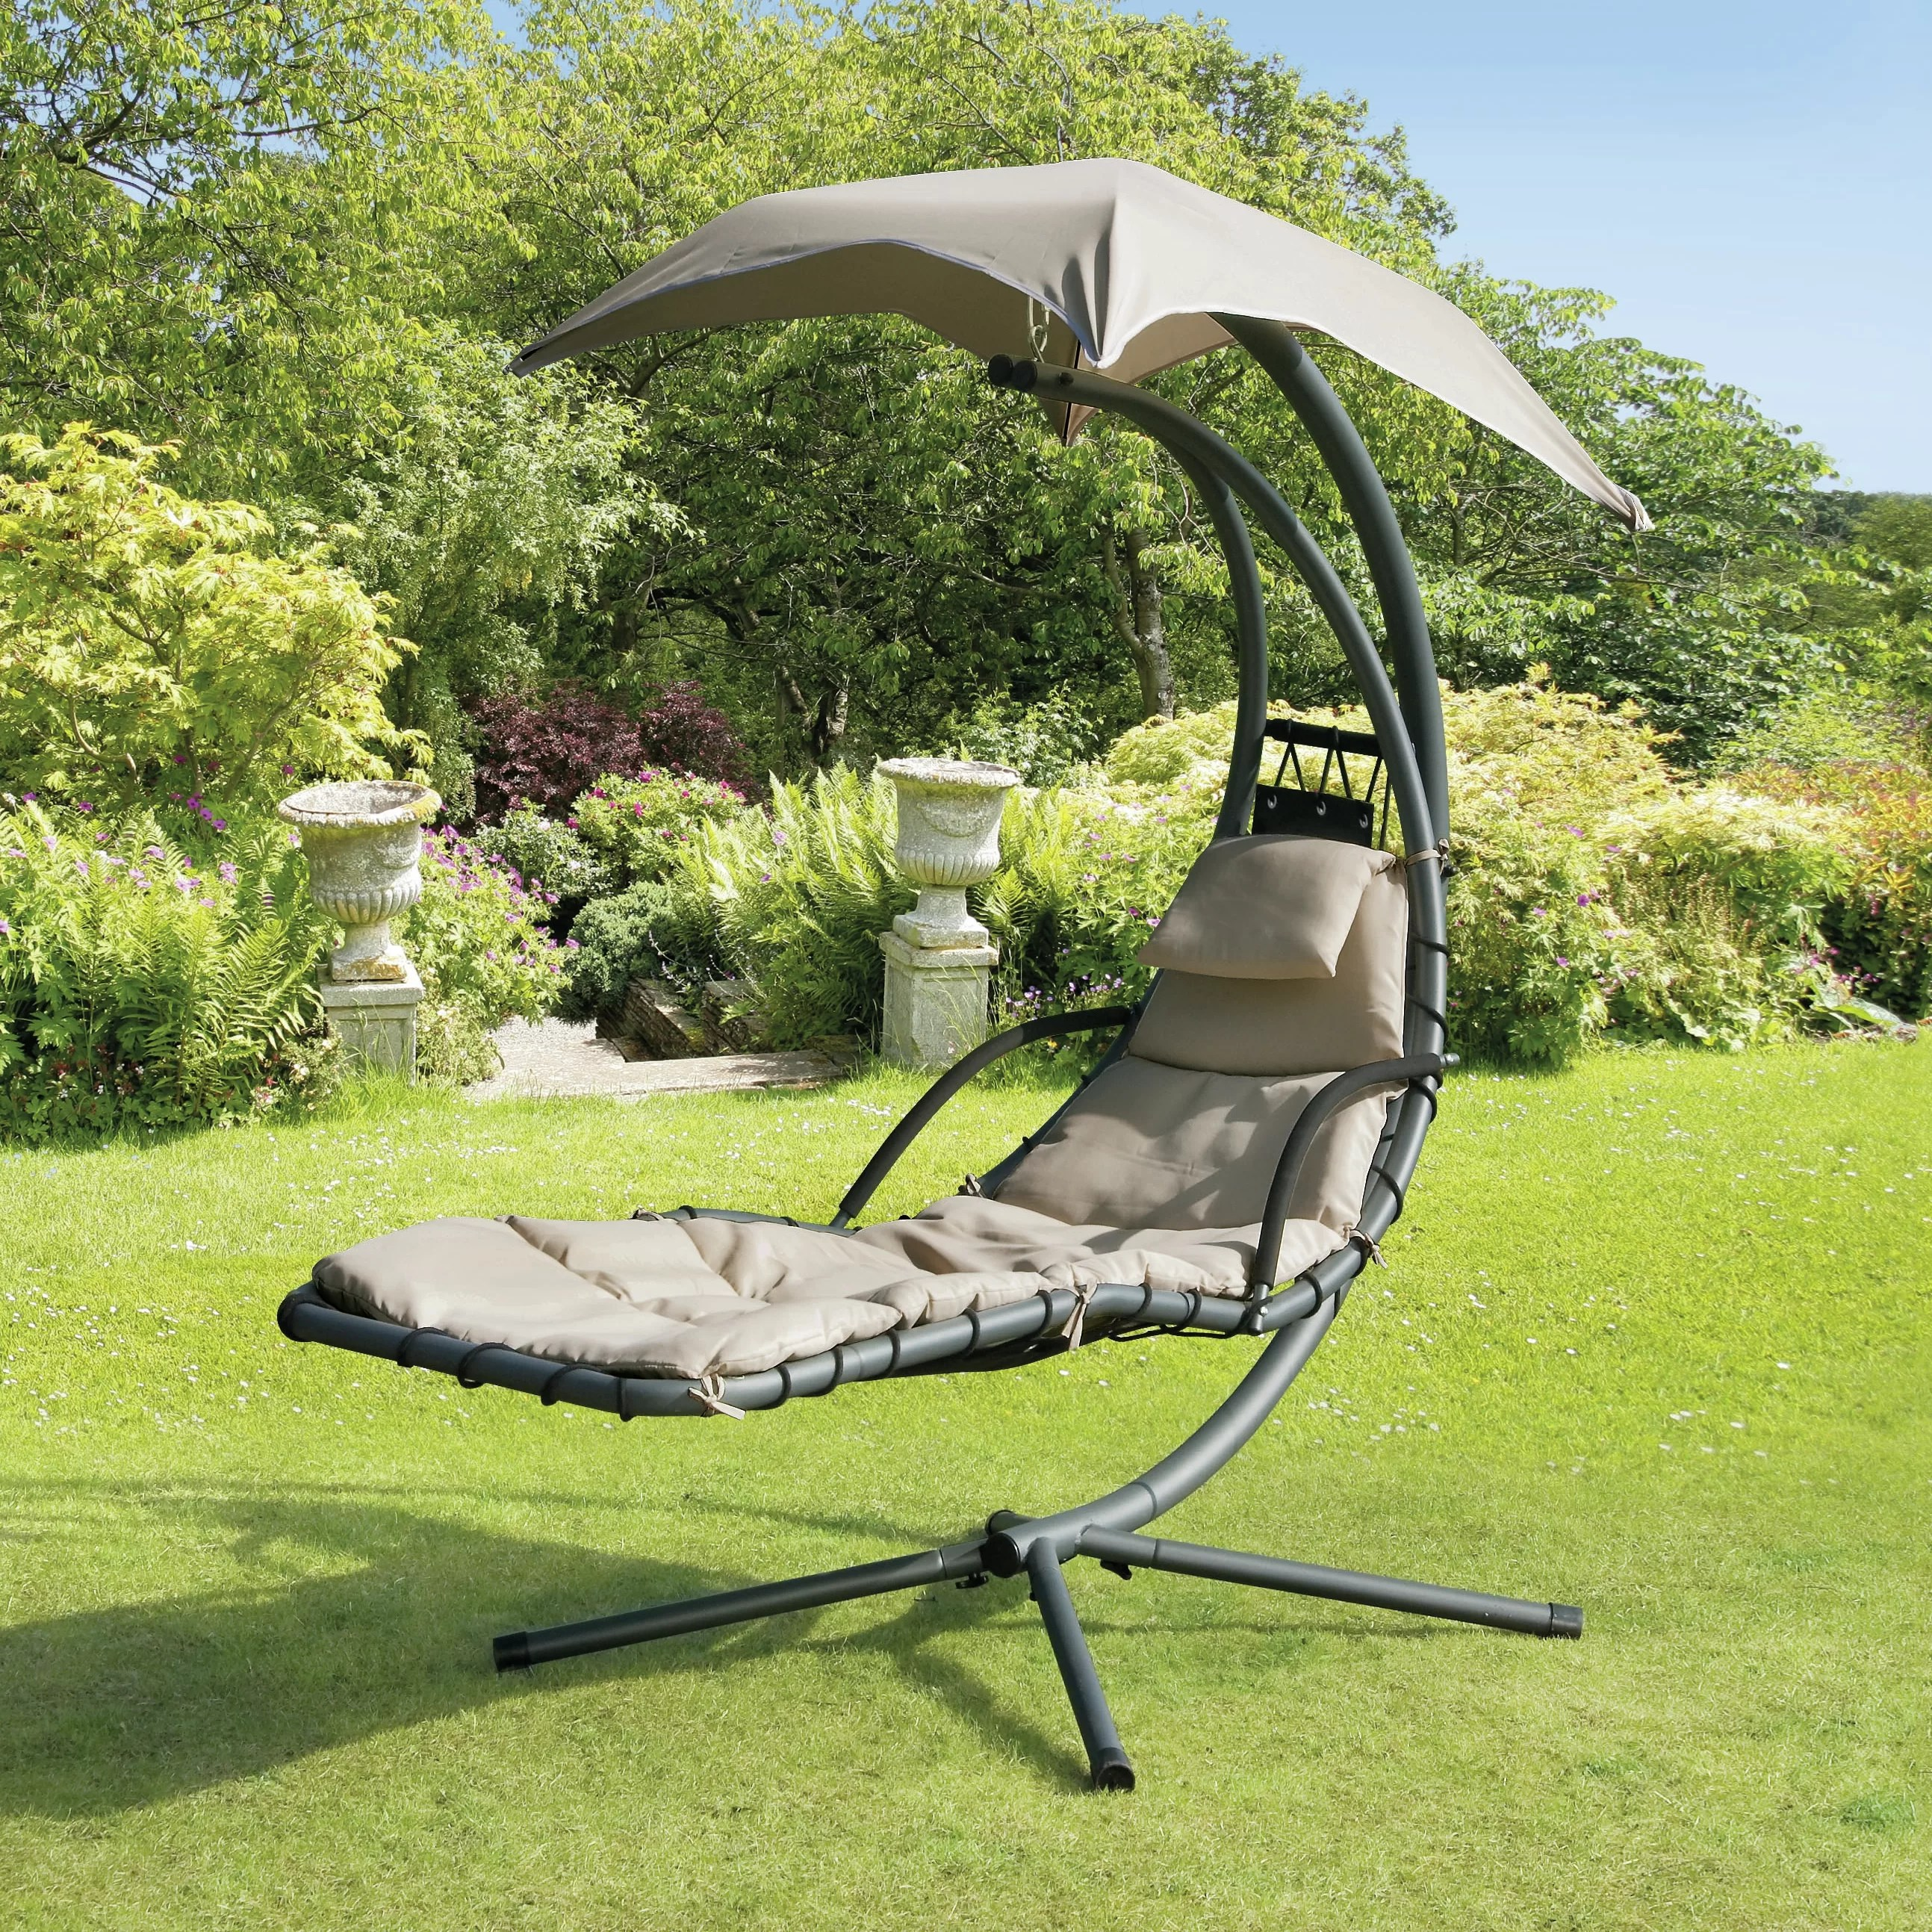 SunTime Outdoor Living Helicopter Swing Chair & Reviews ... on Suntime Outdoor Living  id=94135